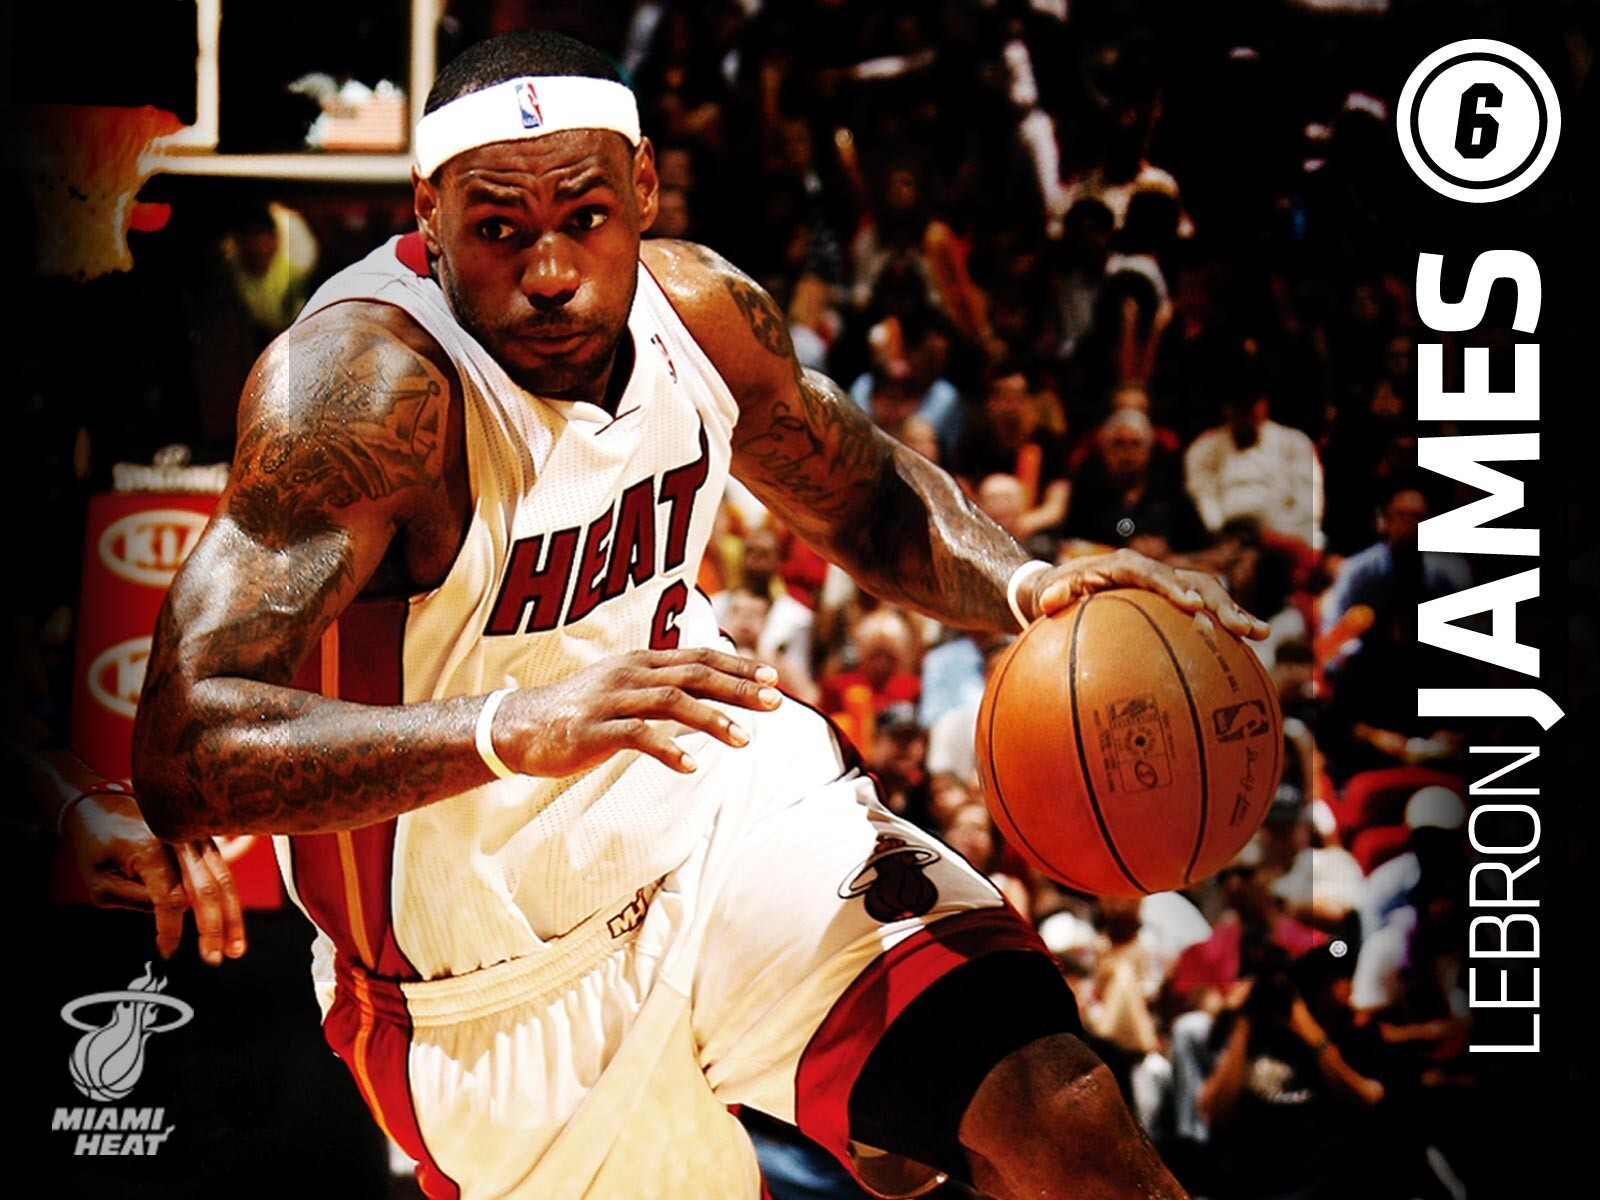 downloads 890 tags lebron james basketball sports views 1754